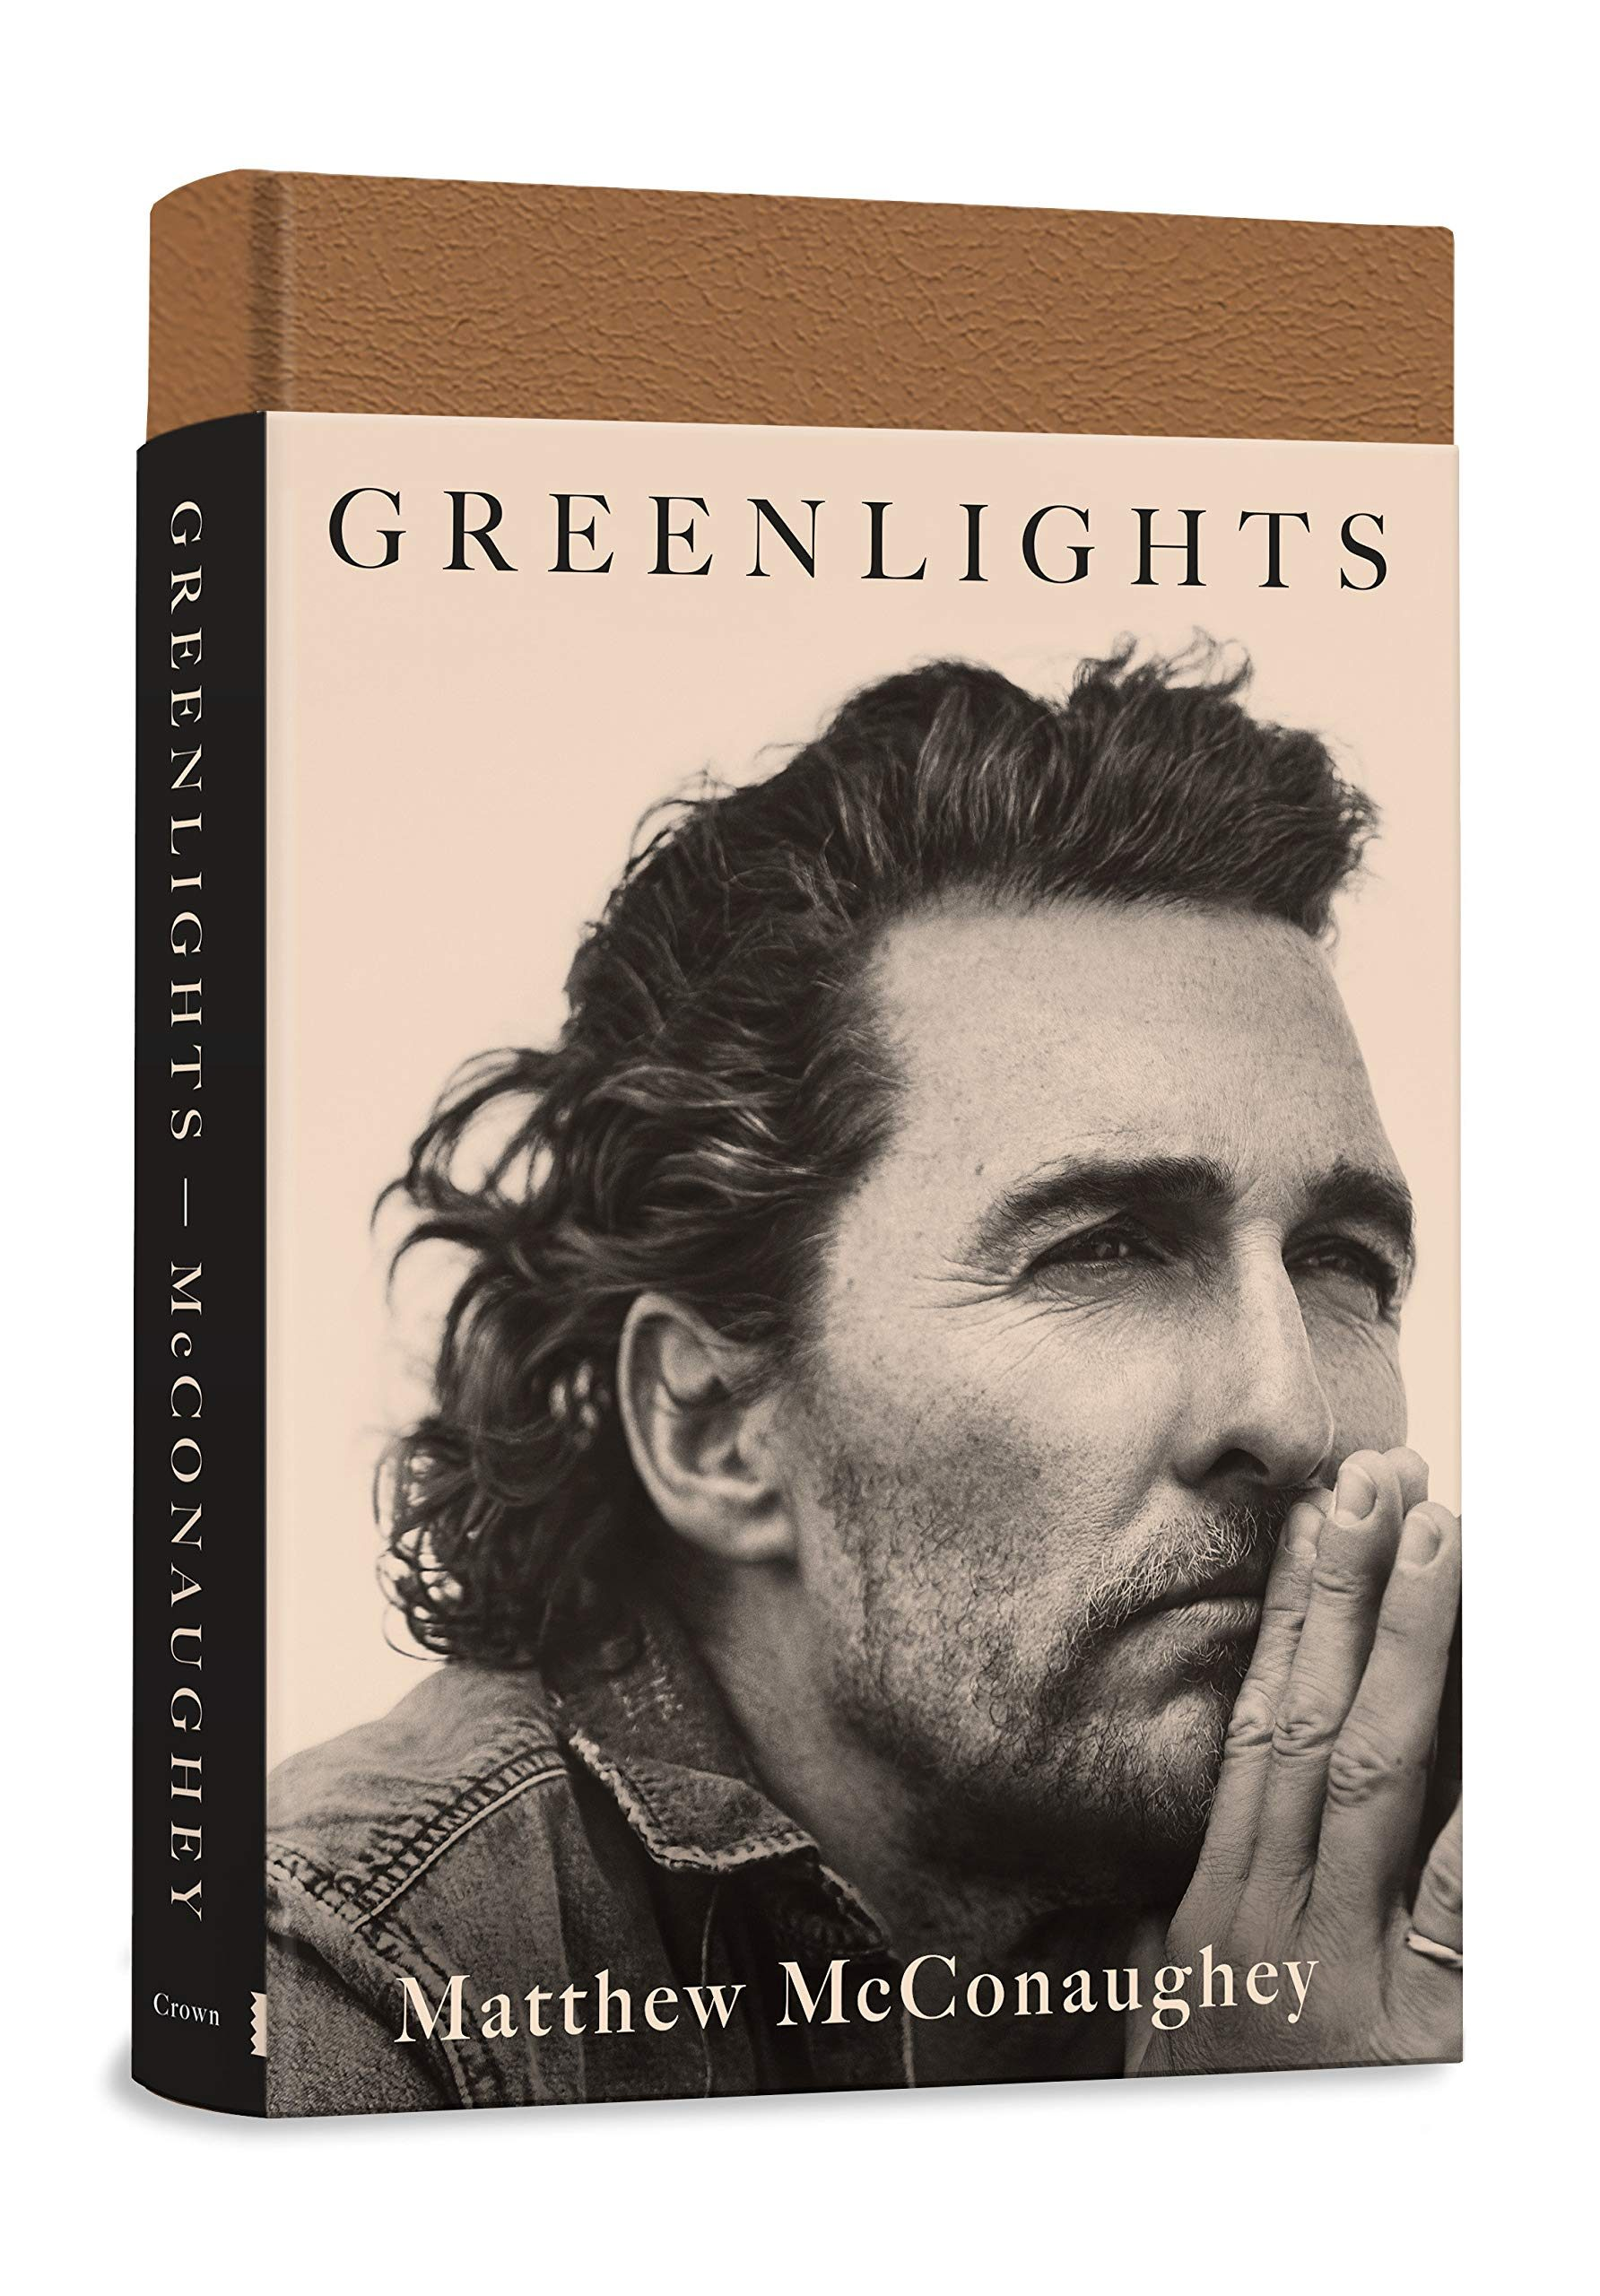 Greenlights By Matthew McConaughey Release Date? 2020 Biography & Nonfiction Releases